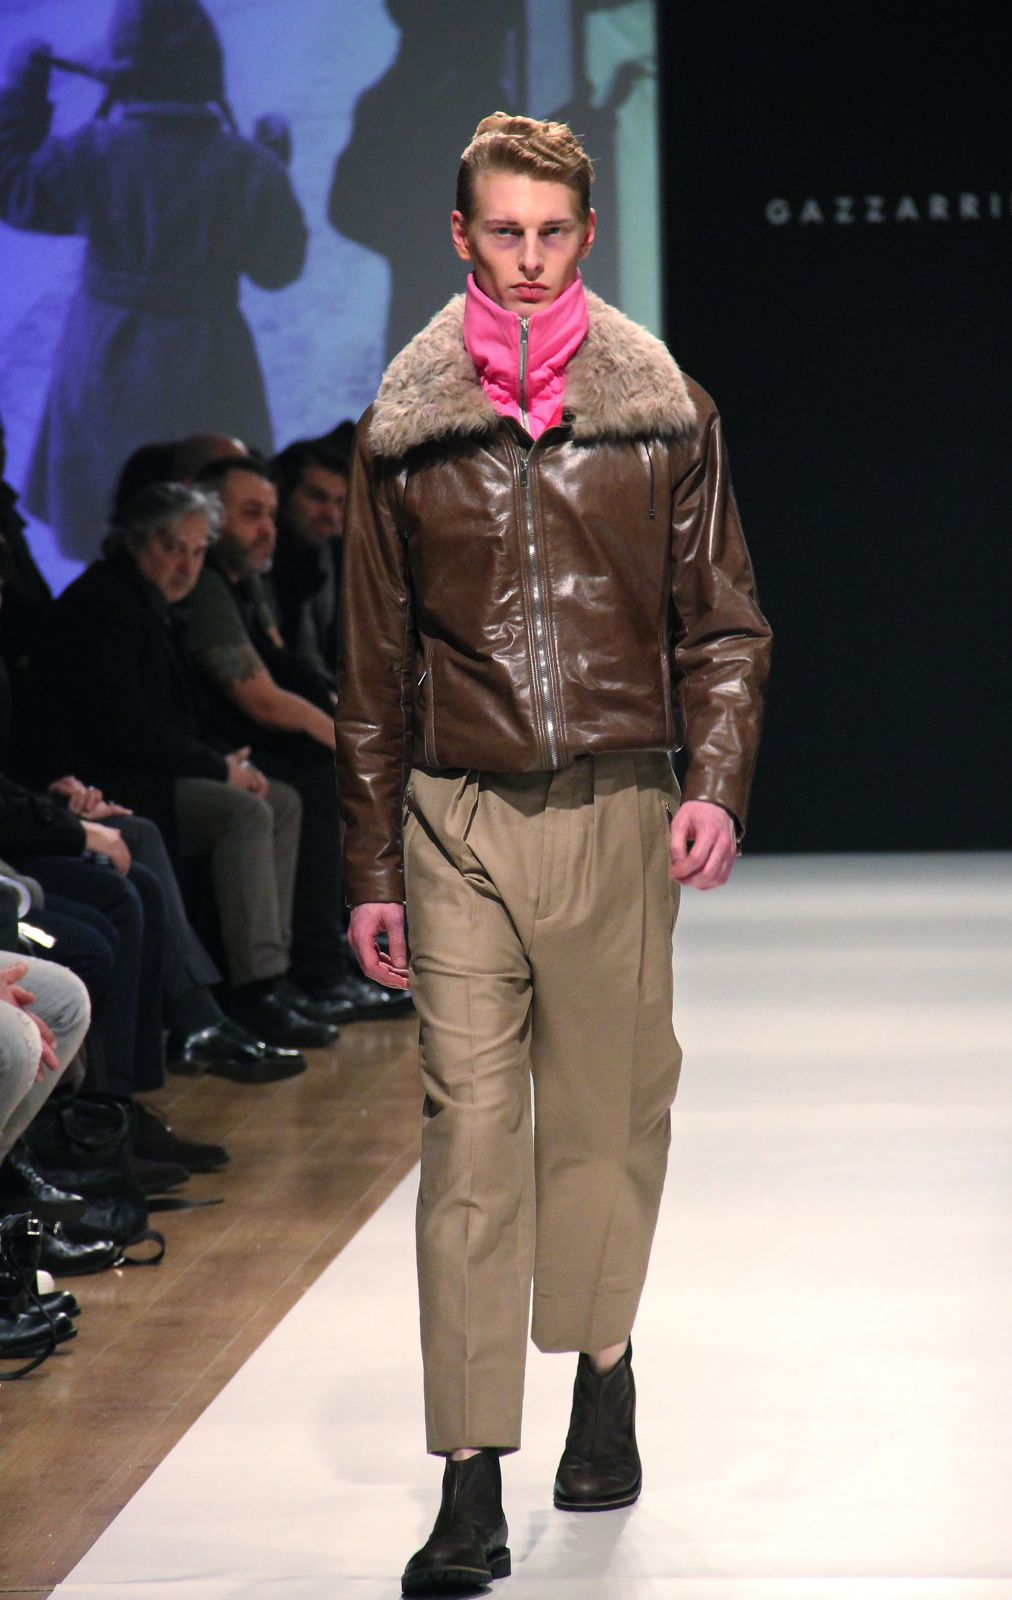 Gazzarrini Fall Winter 2012-13 Men's Collection